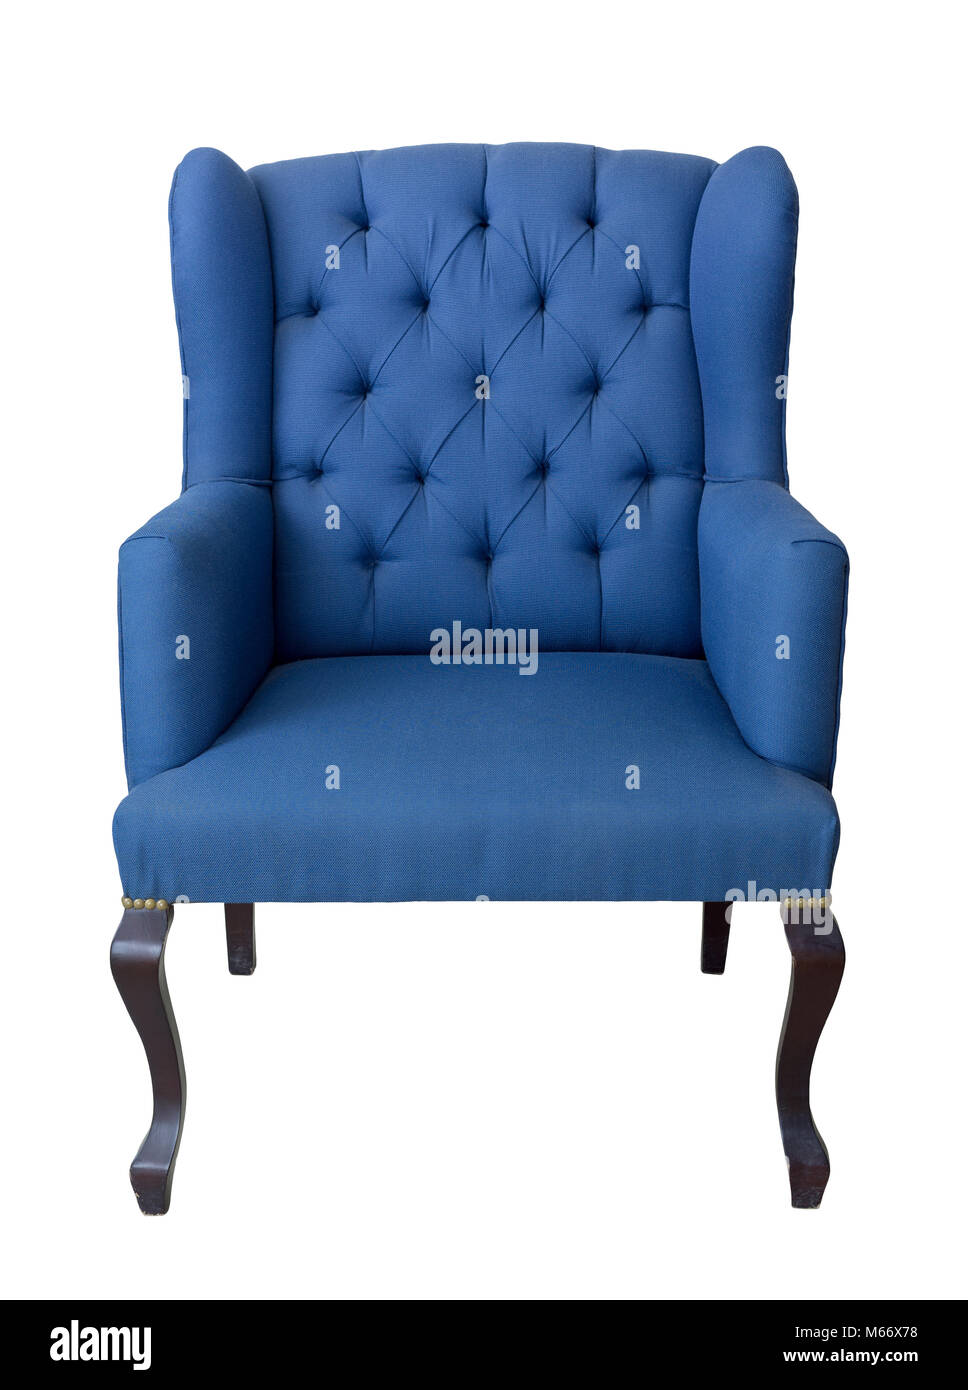 Vintage Furniture - Front shot of French blue wingback armchair with dark brown wooden legs isolated on white background - Stock Image